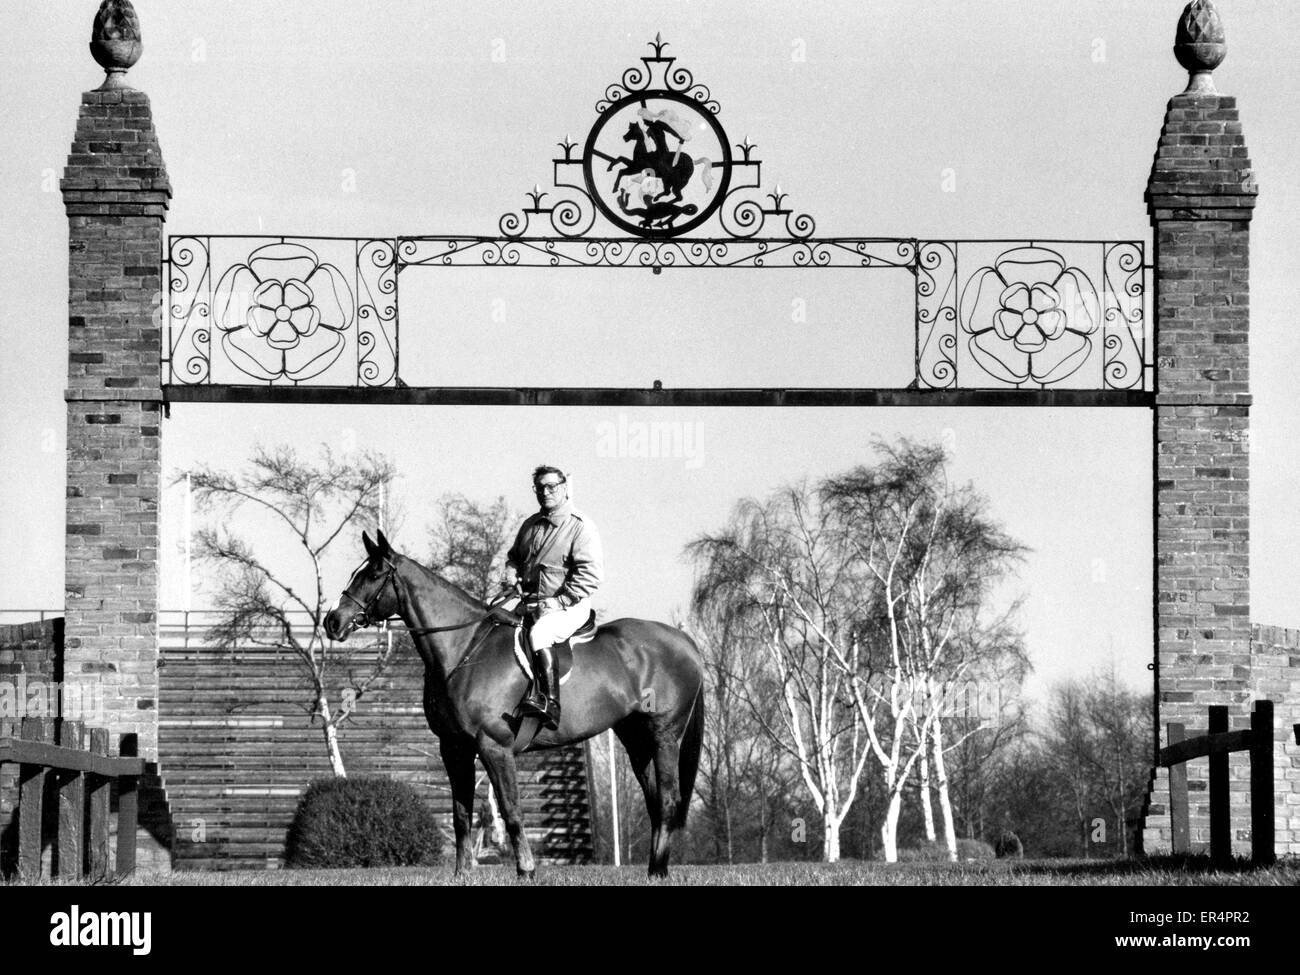 Douglas Bunn owner of the Hickstead Showjumping course in the 1980s - Stock Image